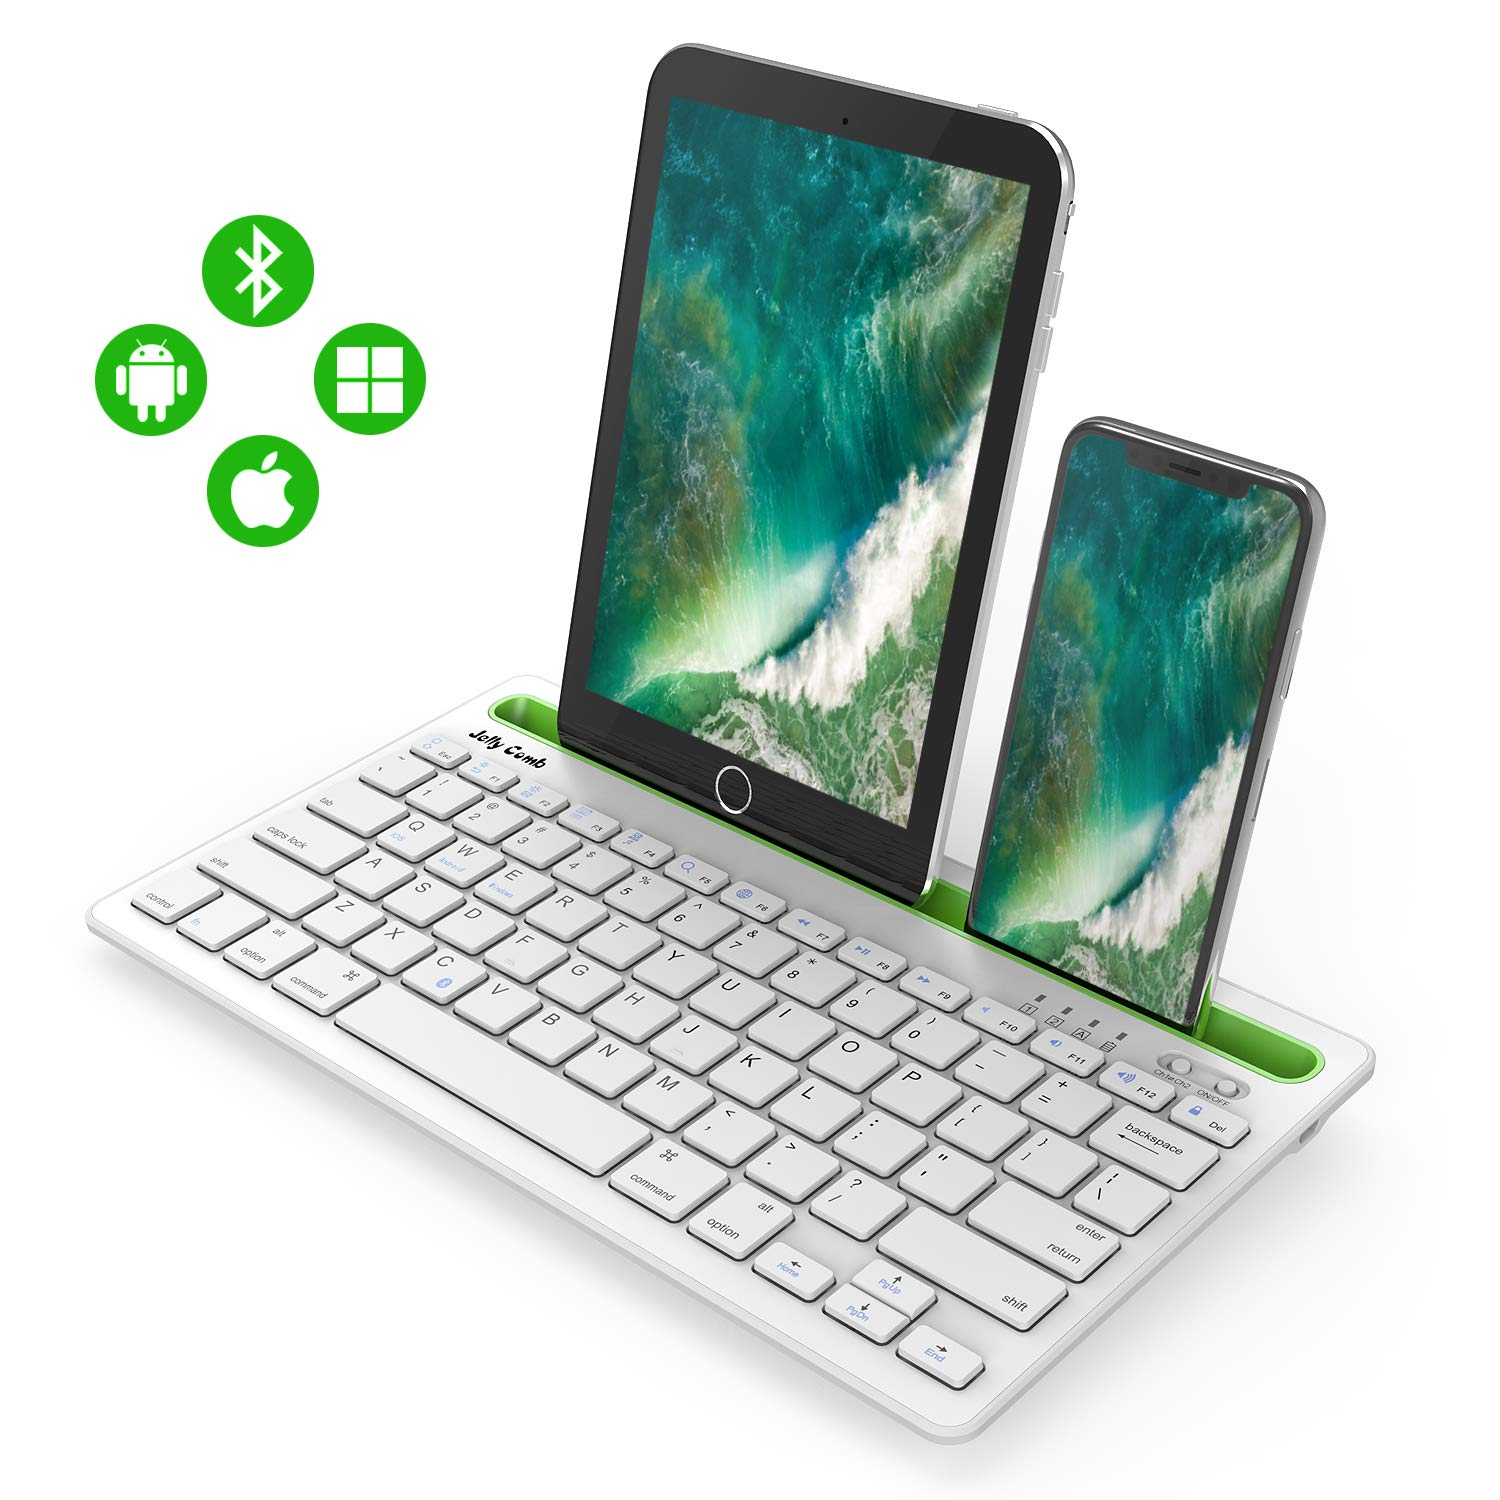 Bluetooth Keyboard, Jelly Comb BK230 Dual Channel Multi-Device Universal Wireless Bluetooth Rechargeable Keyboard with Sturdy Stand for Tablet Smartphone PC Windows Android iOS Mac (White and Green)